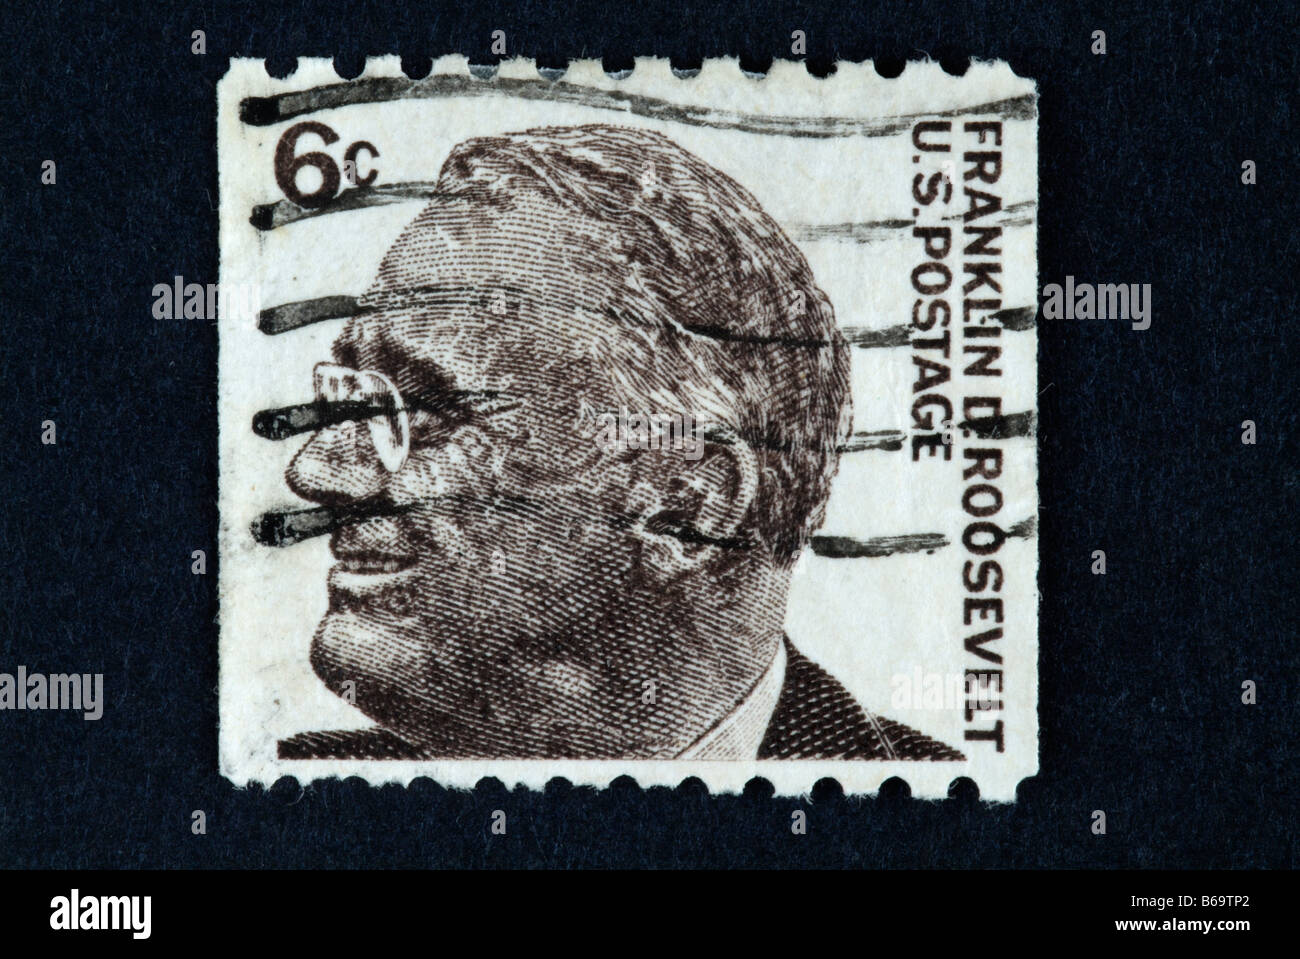 A 6 Cent US Postage Stamp With The Image Of Franklin D Roosevelt